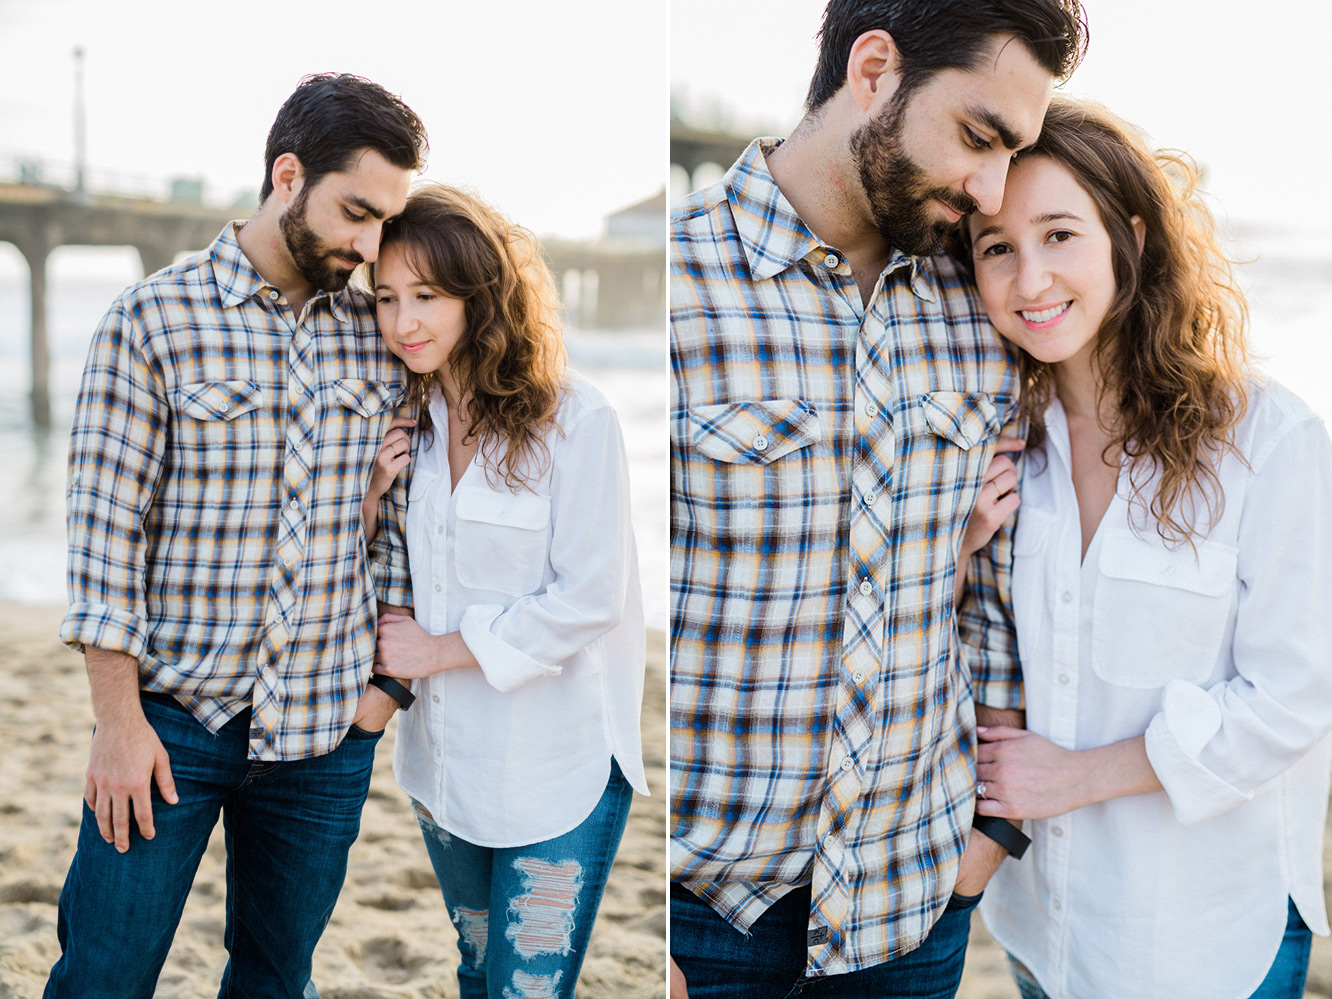 manhattan-beach-engagement-photos-1006